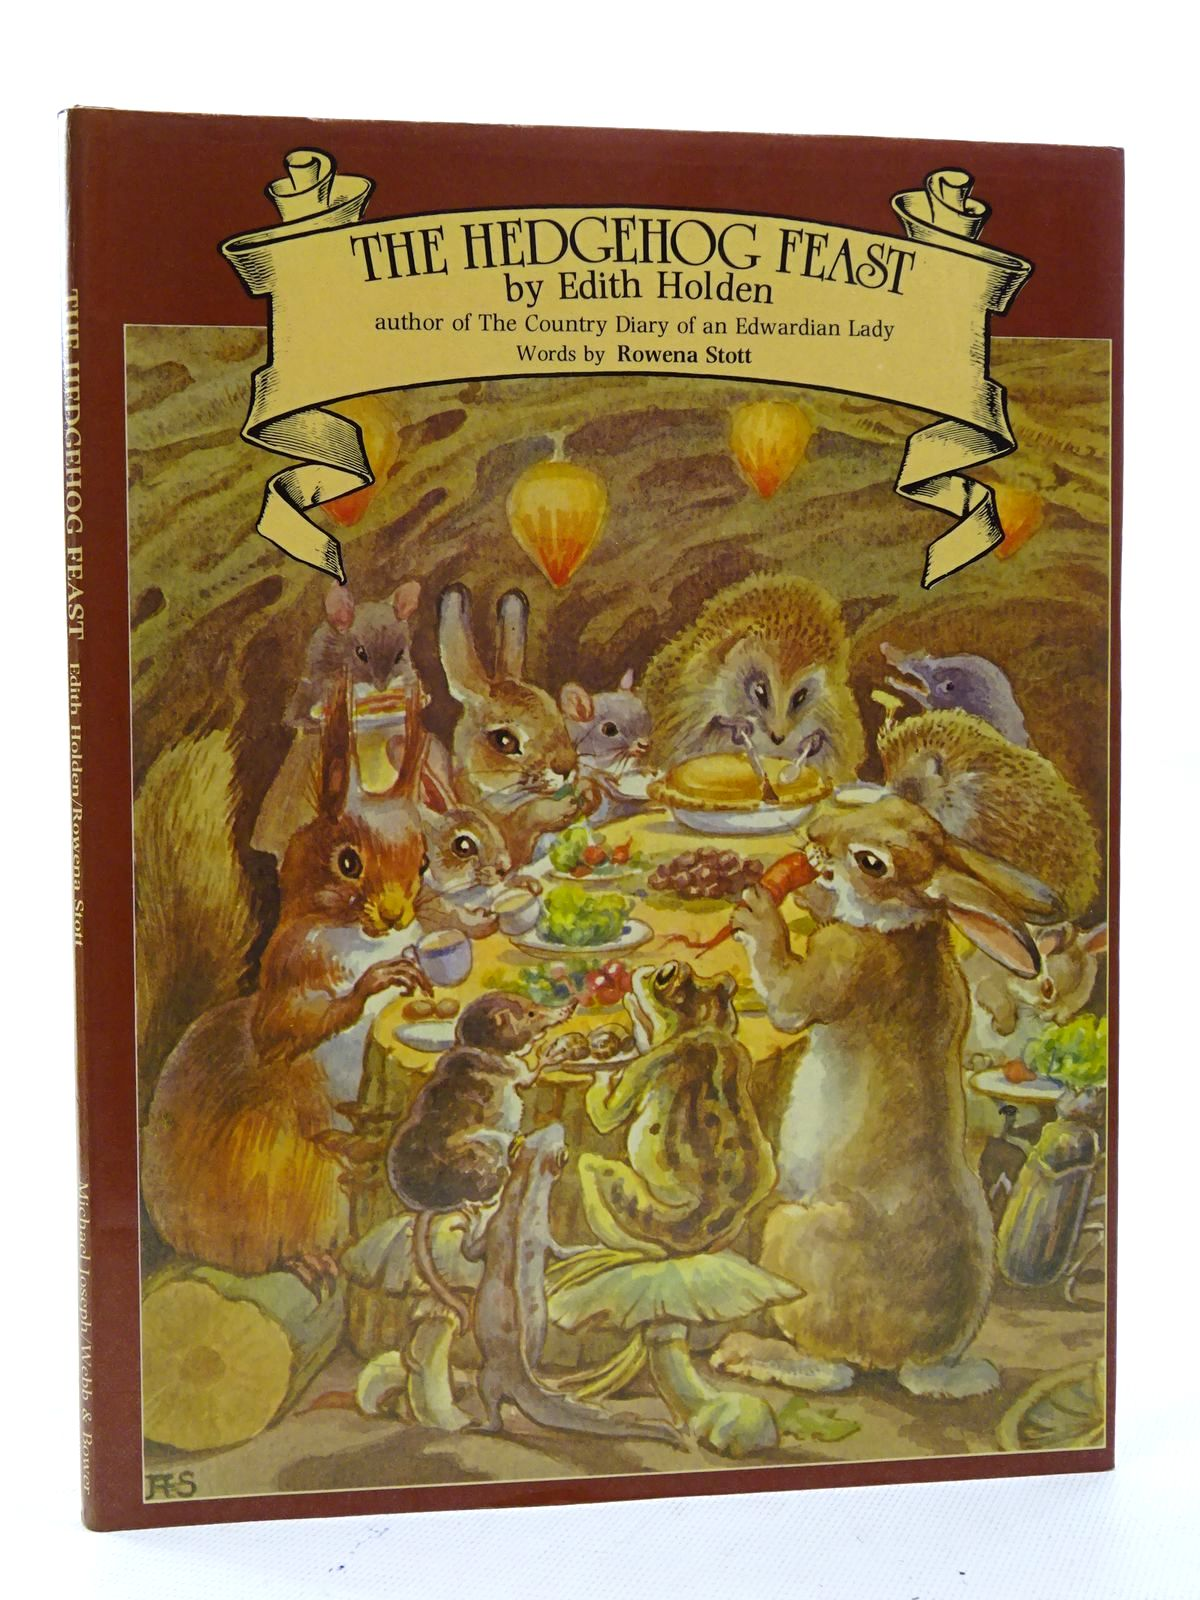 Photo of THE HEDGEHOG FEAST written by Stott, Rowena illustrated by Holden, Edith published by Michael Joseph, Webb & Bower (STOCK CODE: 1816133)  for sale by Stella & Rose's Books